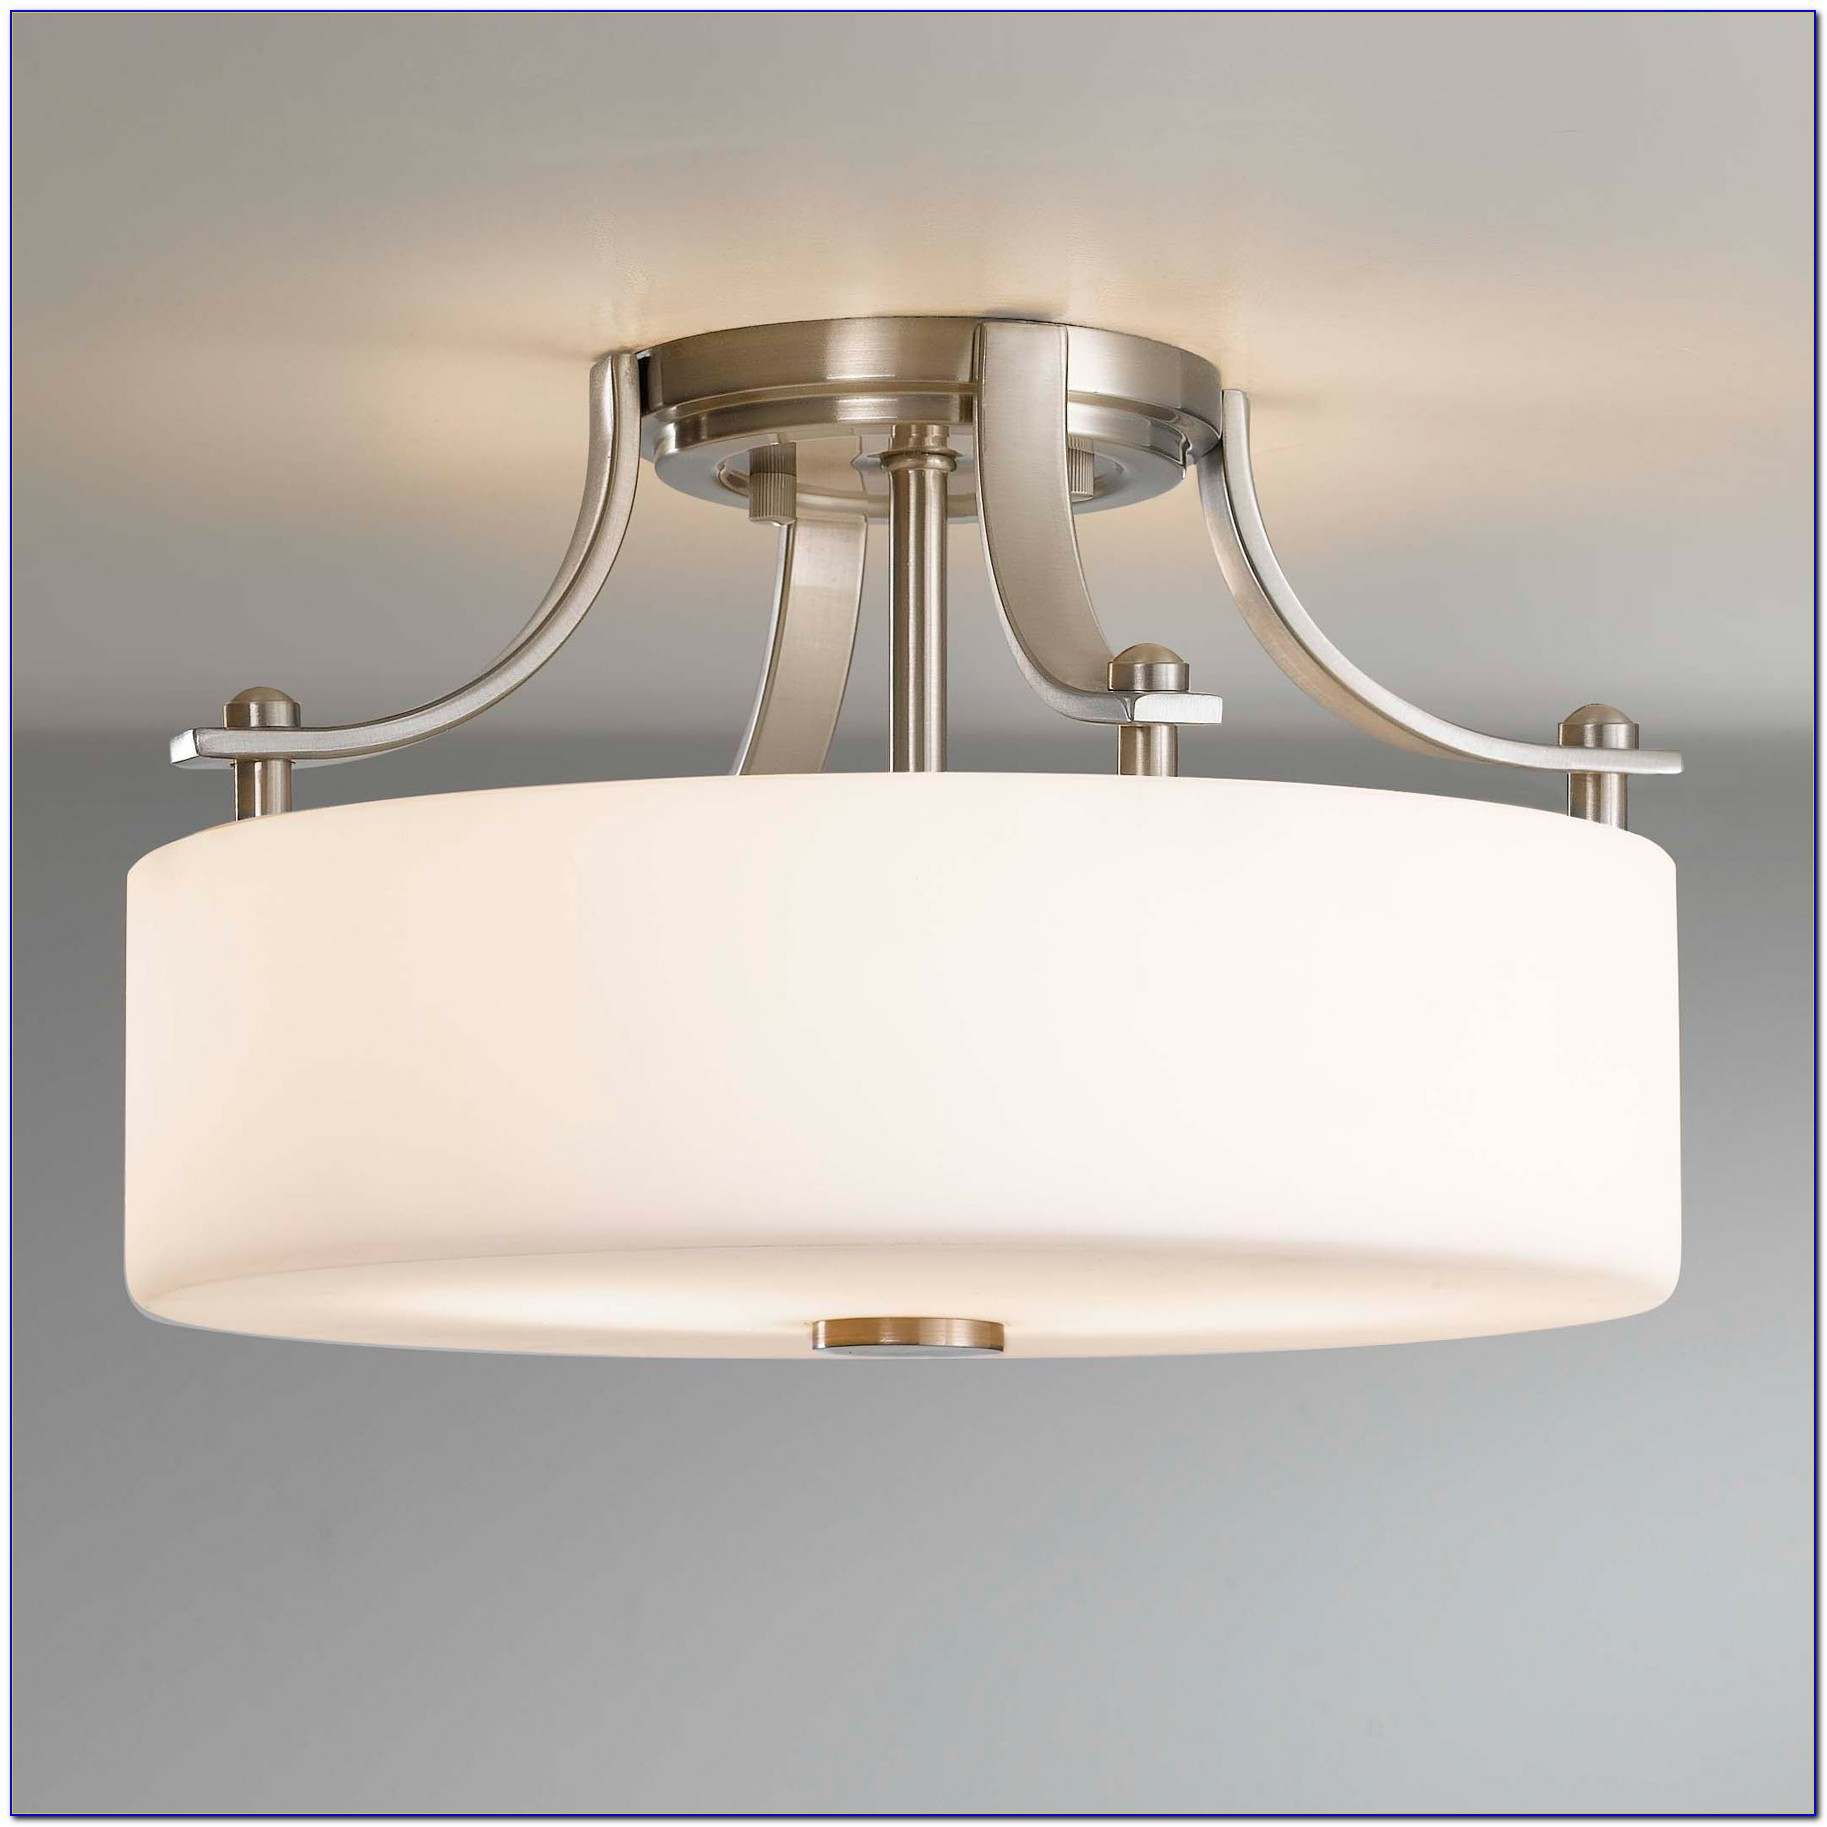 Flush To Ceiling Light Fixtures